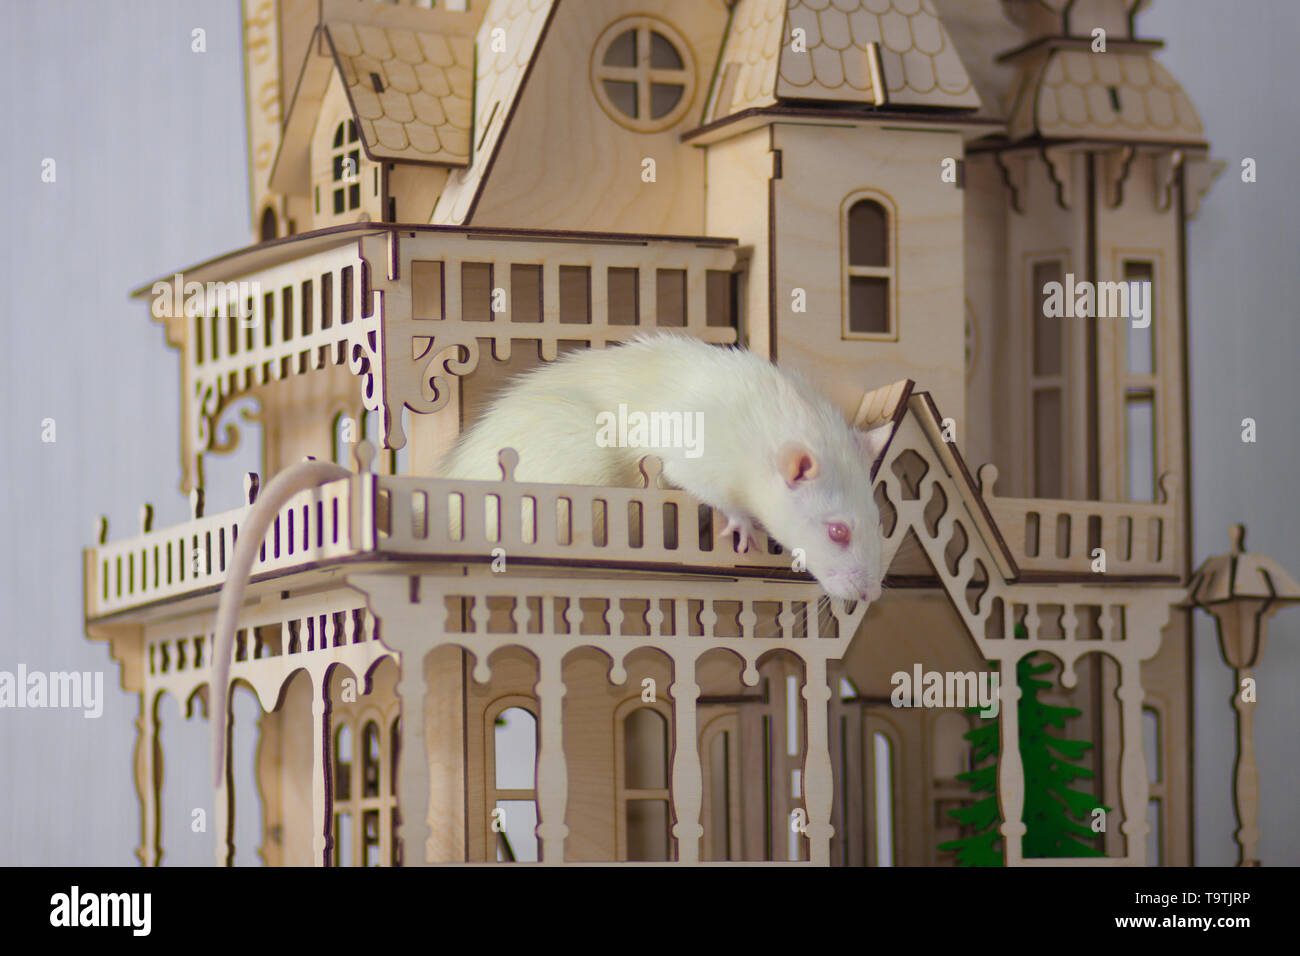 A house for the rodent. White rat in a wooden house. The mouse sits in a beautiful castle. - Stock Image